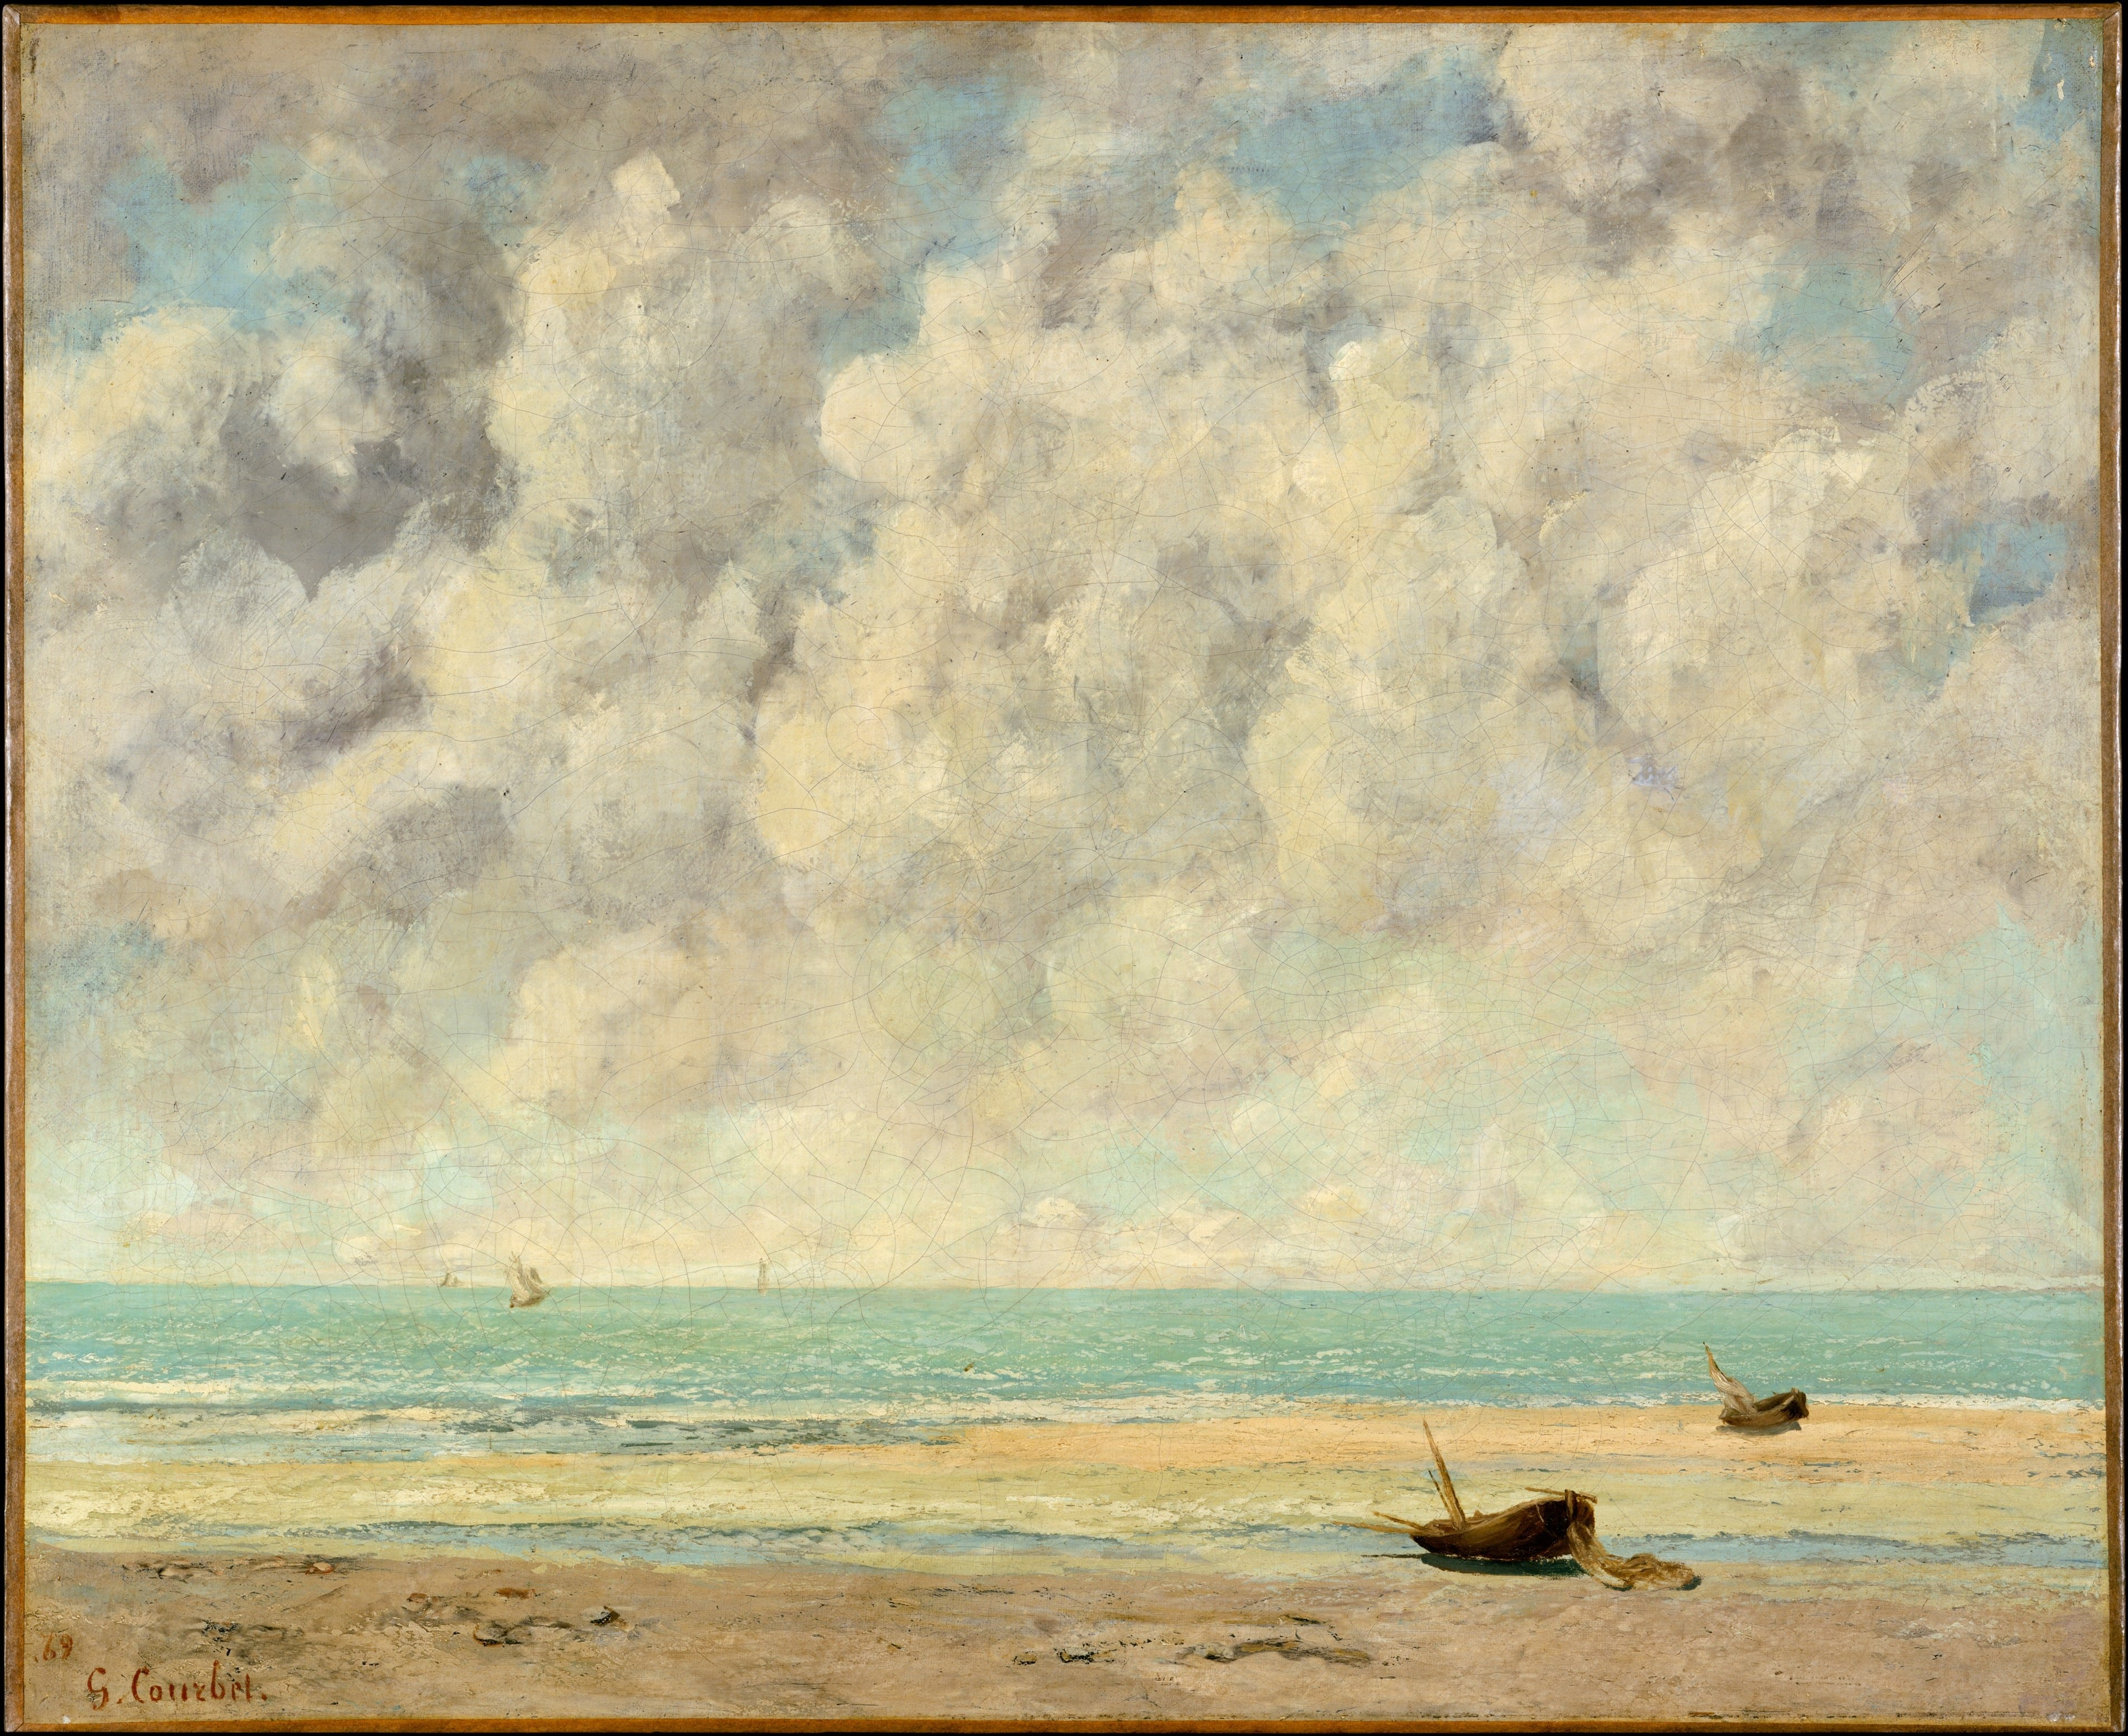 The Calm Sea, Courbet-min